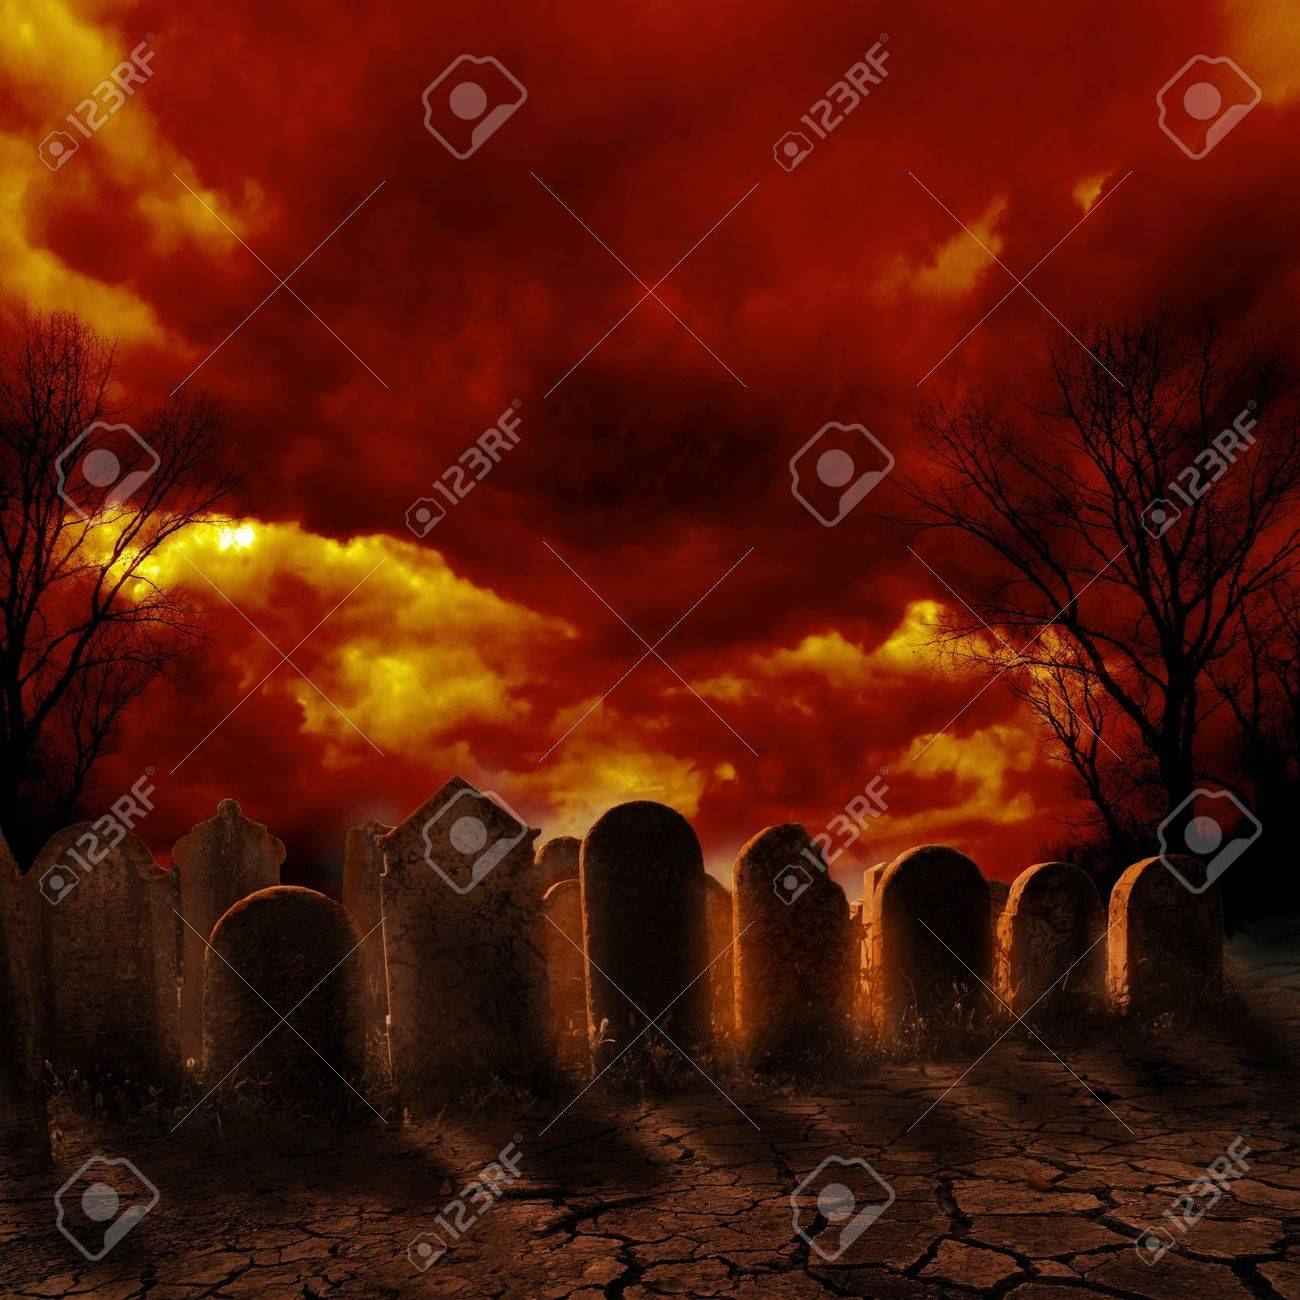 Spooky graveyard with burning sky - 22033503